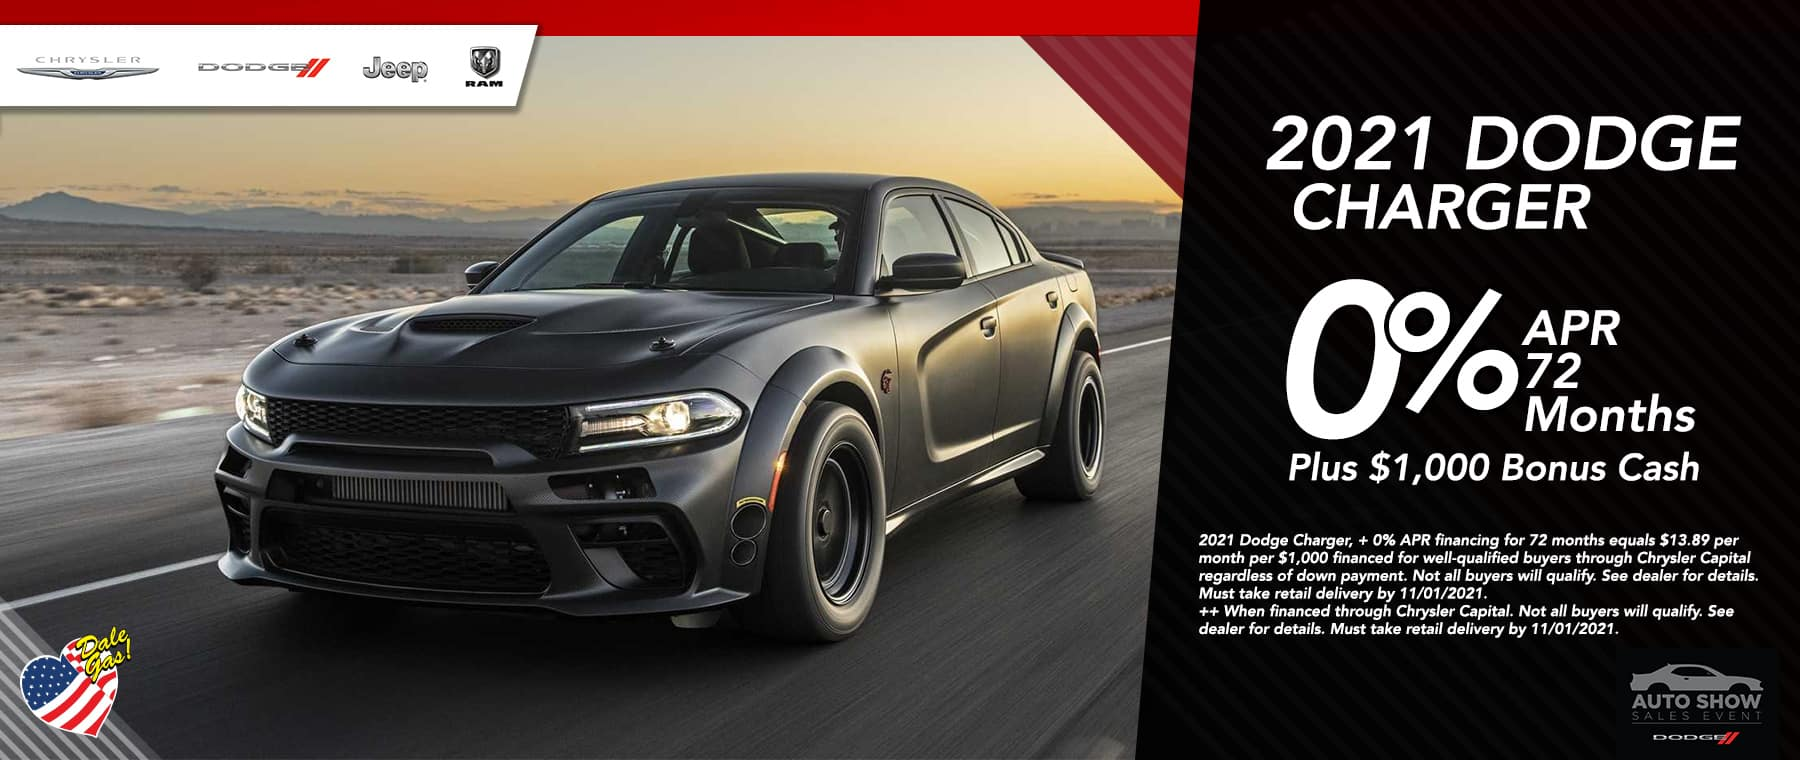 2021_Dodge_Charger (1) (1)